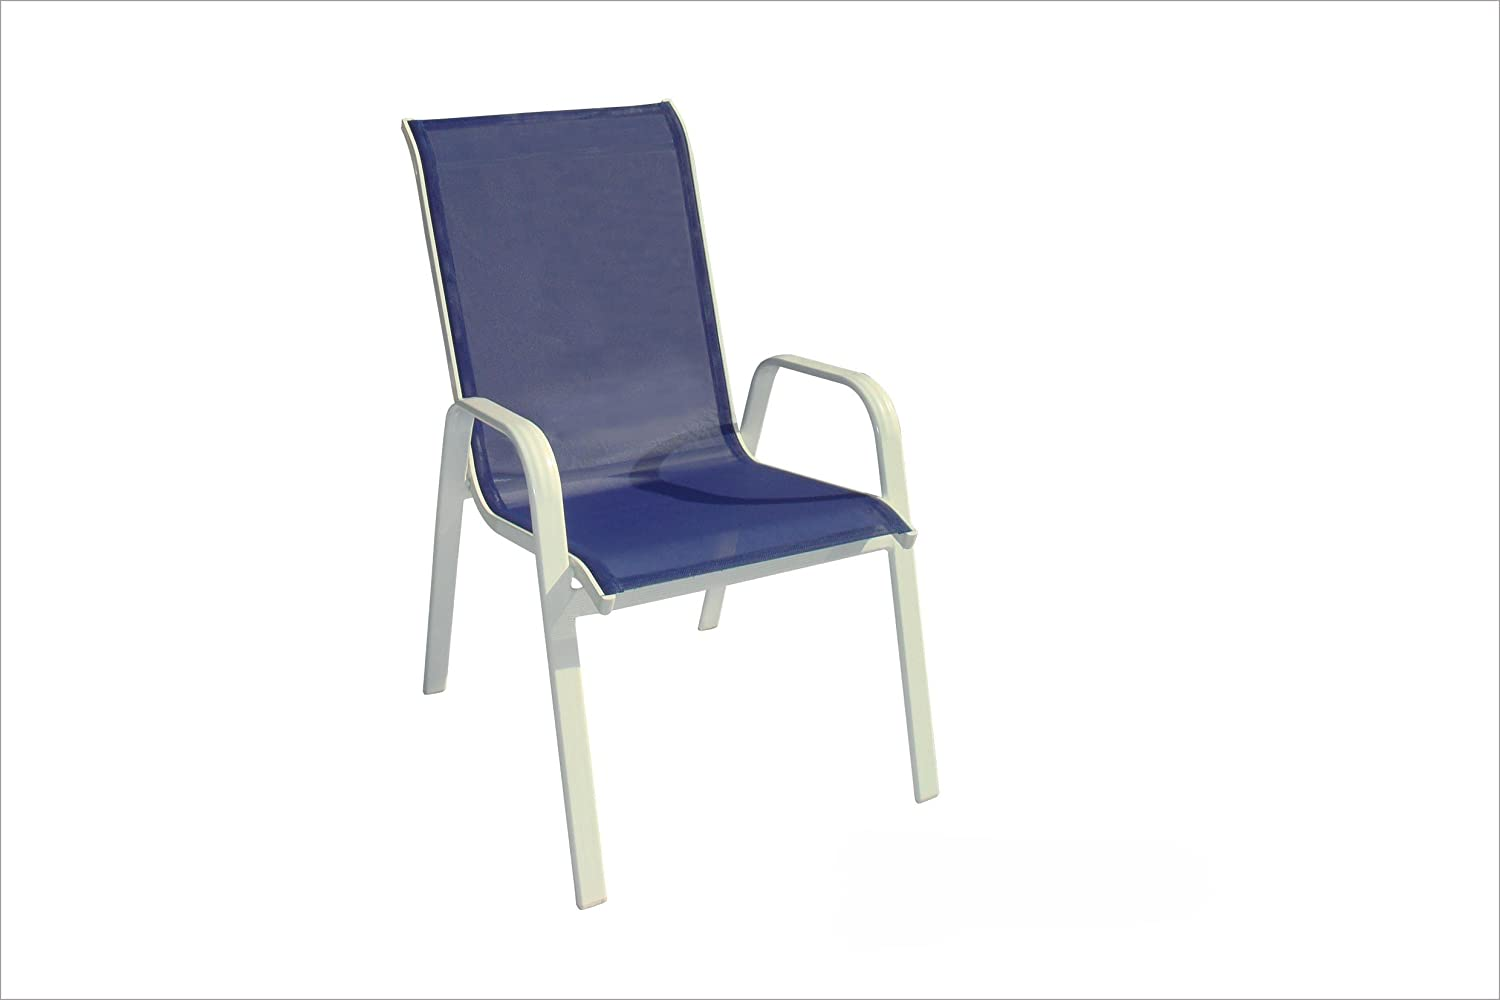 DC America 372139-BL4PK 4-Pack Fantasy Sling Chair, Blueberry - Amazon.com: Sling Chairs: Patio, Lawn & Garden